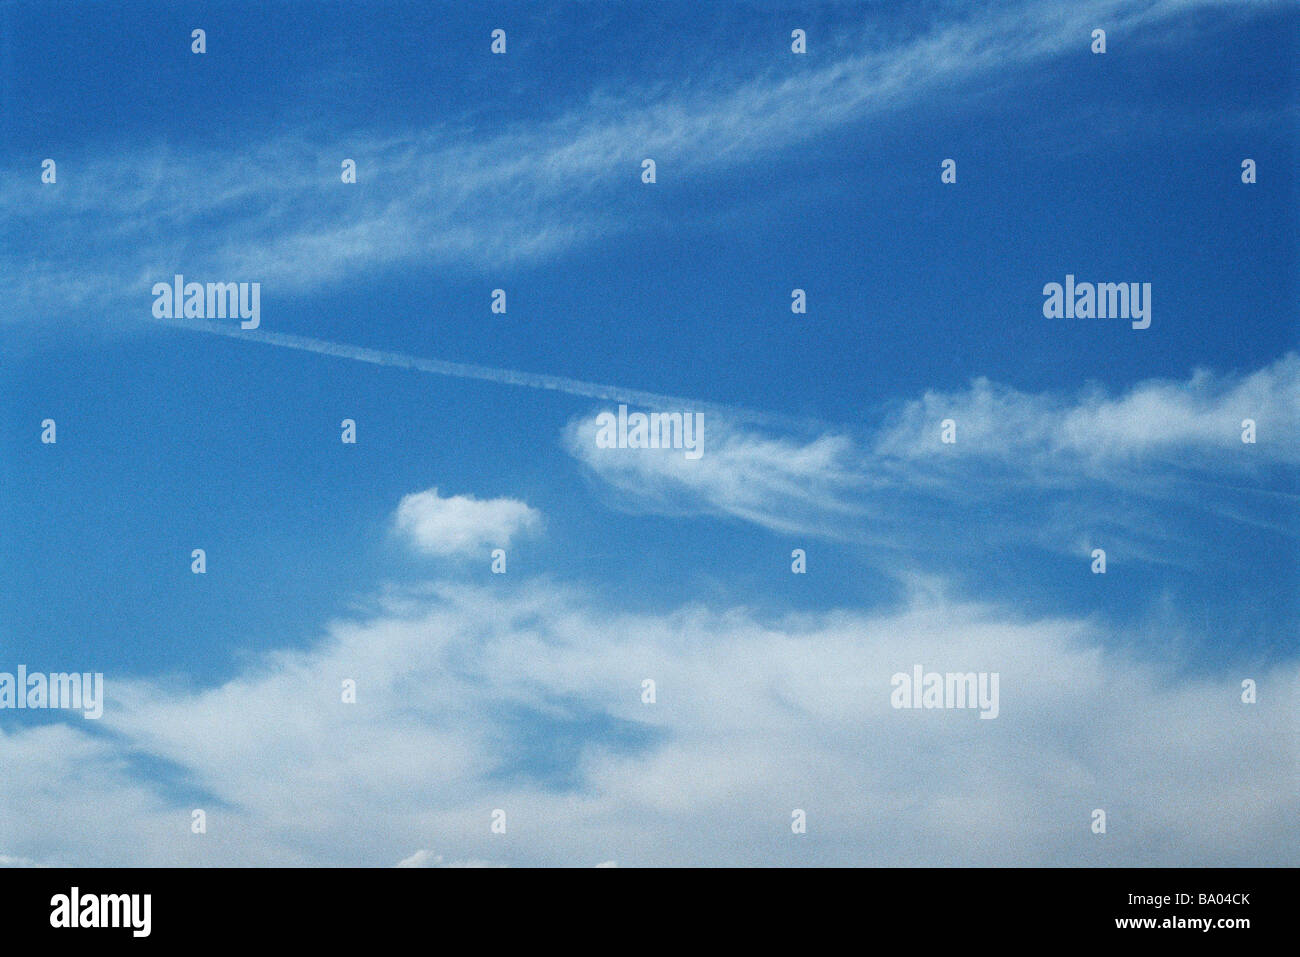 Cloudscape and vapor trail - Stock Image